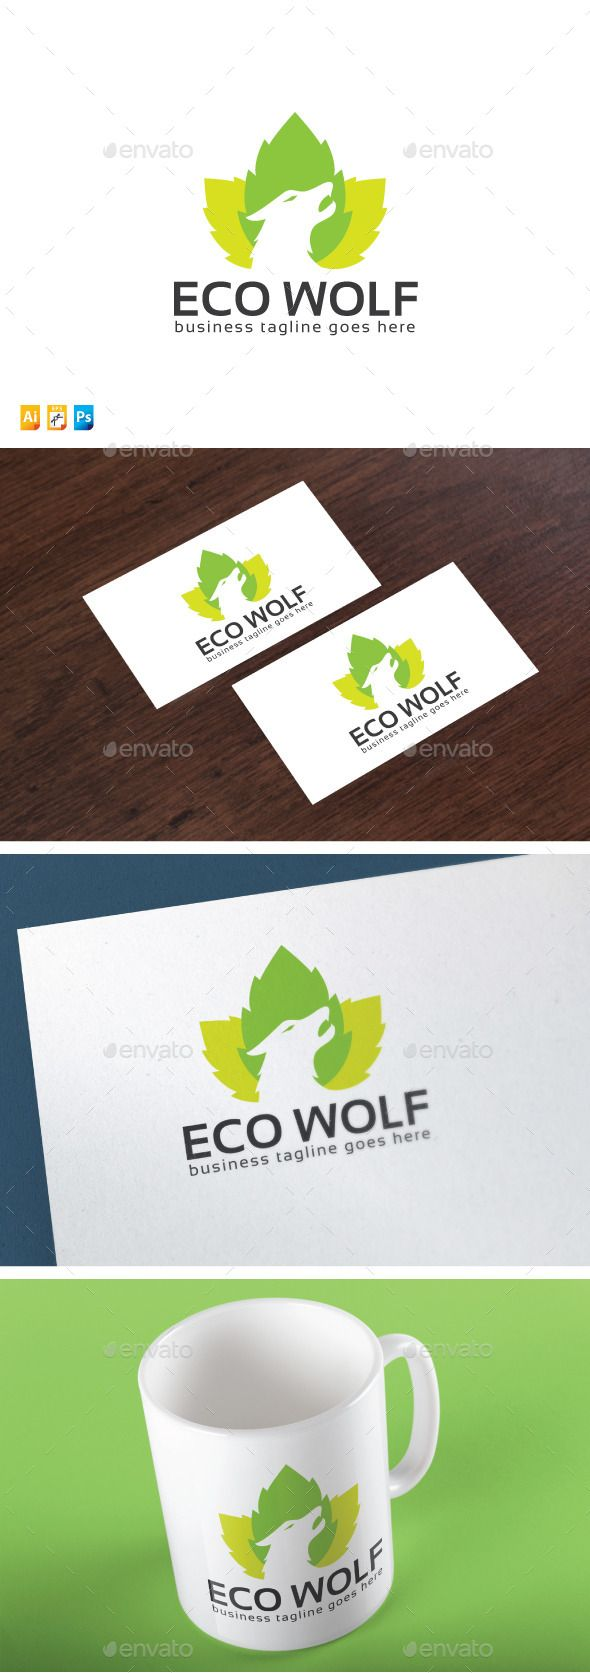 Eco Wolf by fand Logo Template Feature100 Scalable Vector FilesEditable VectorResizable VectorEasy to Edit Color / Textwith Black & White Version